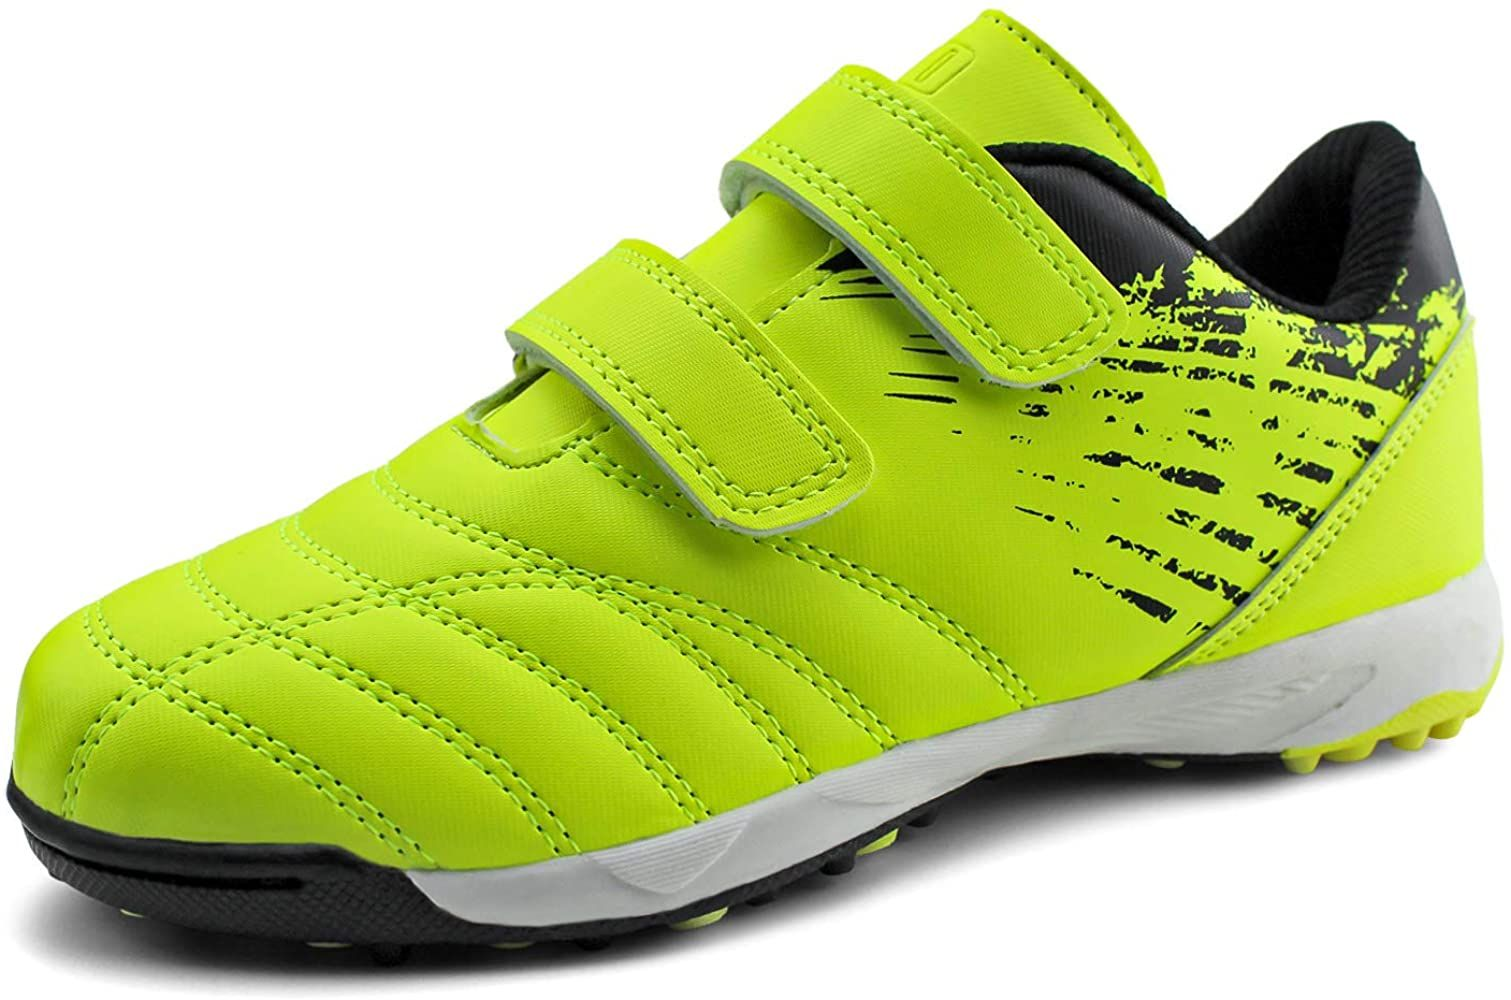 brooman Kids Comfortable Turf Soccer Shoes Athletic Football Shoes